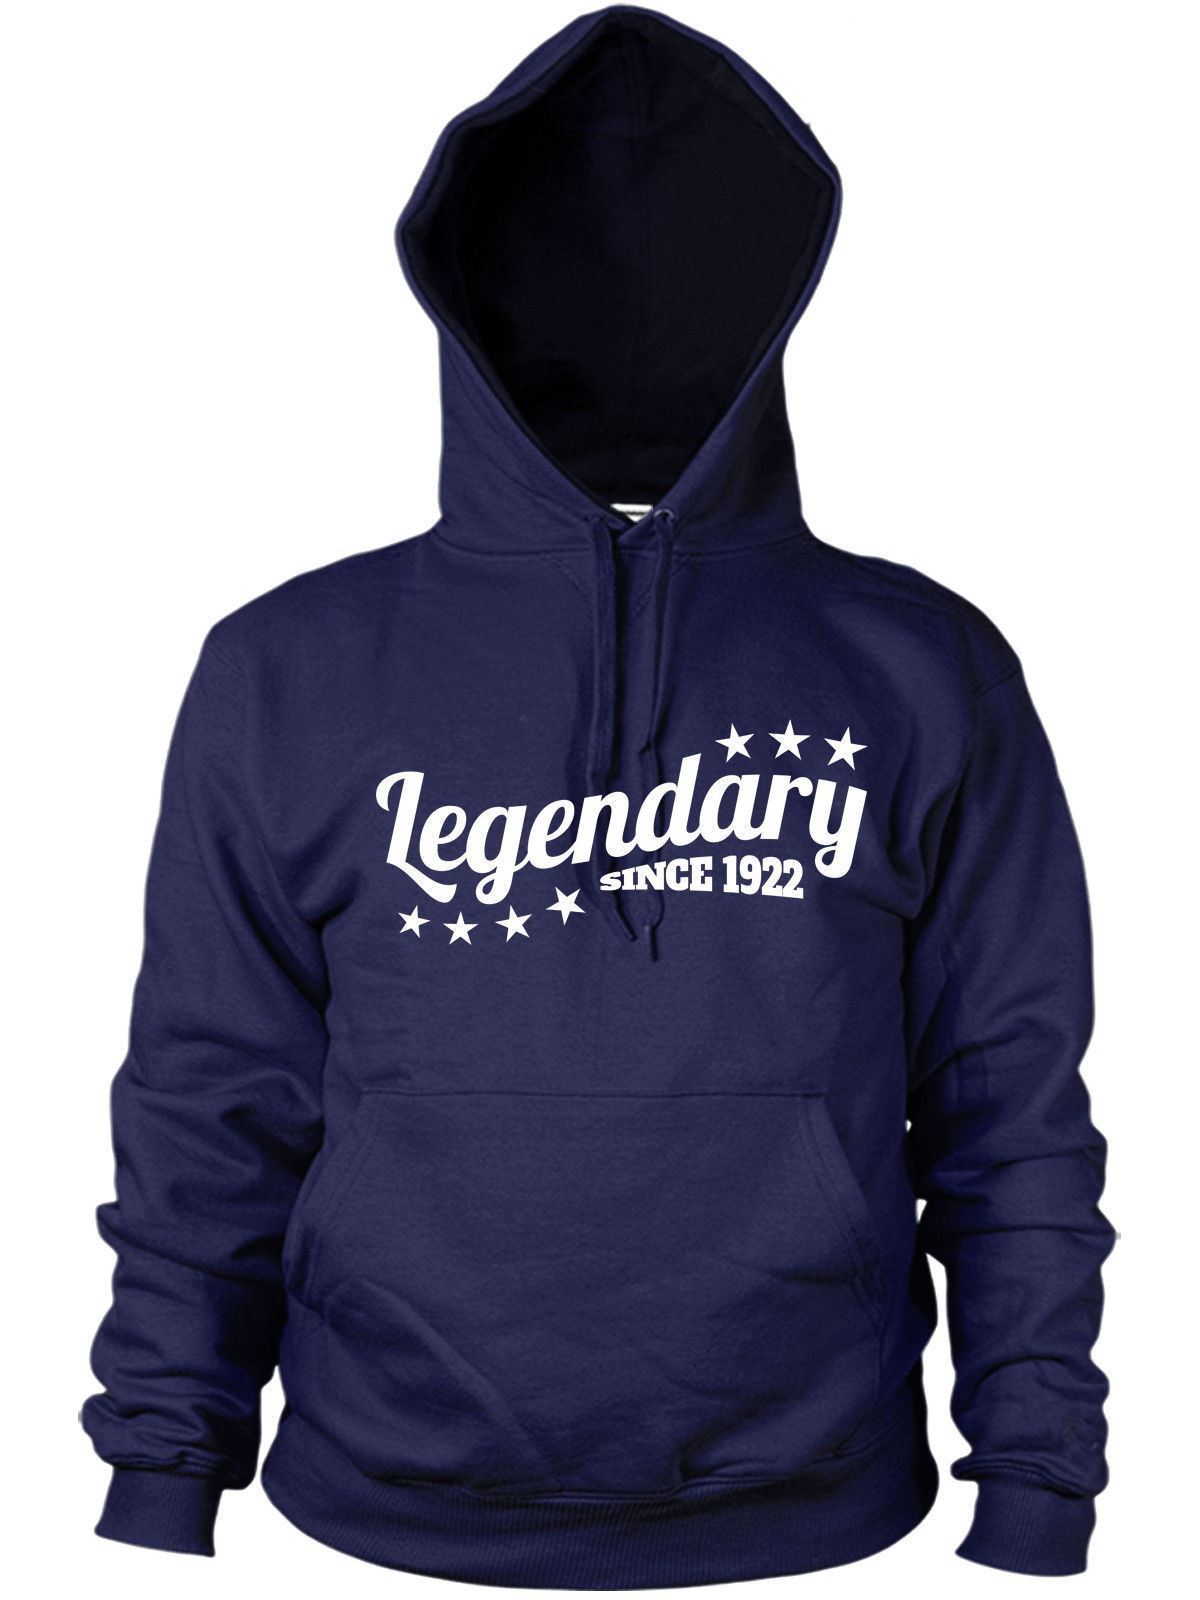 Legendary Since 1922 Hoodie Birthday Gift 94 95 Years Old Present